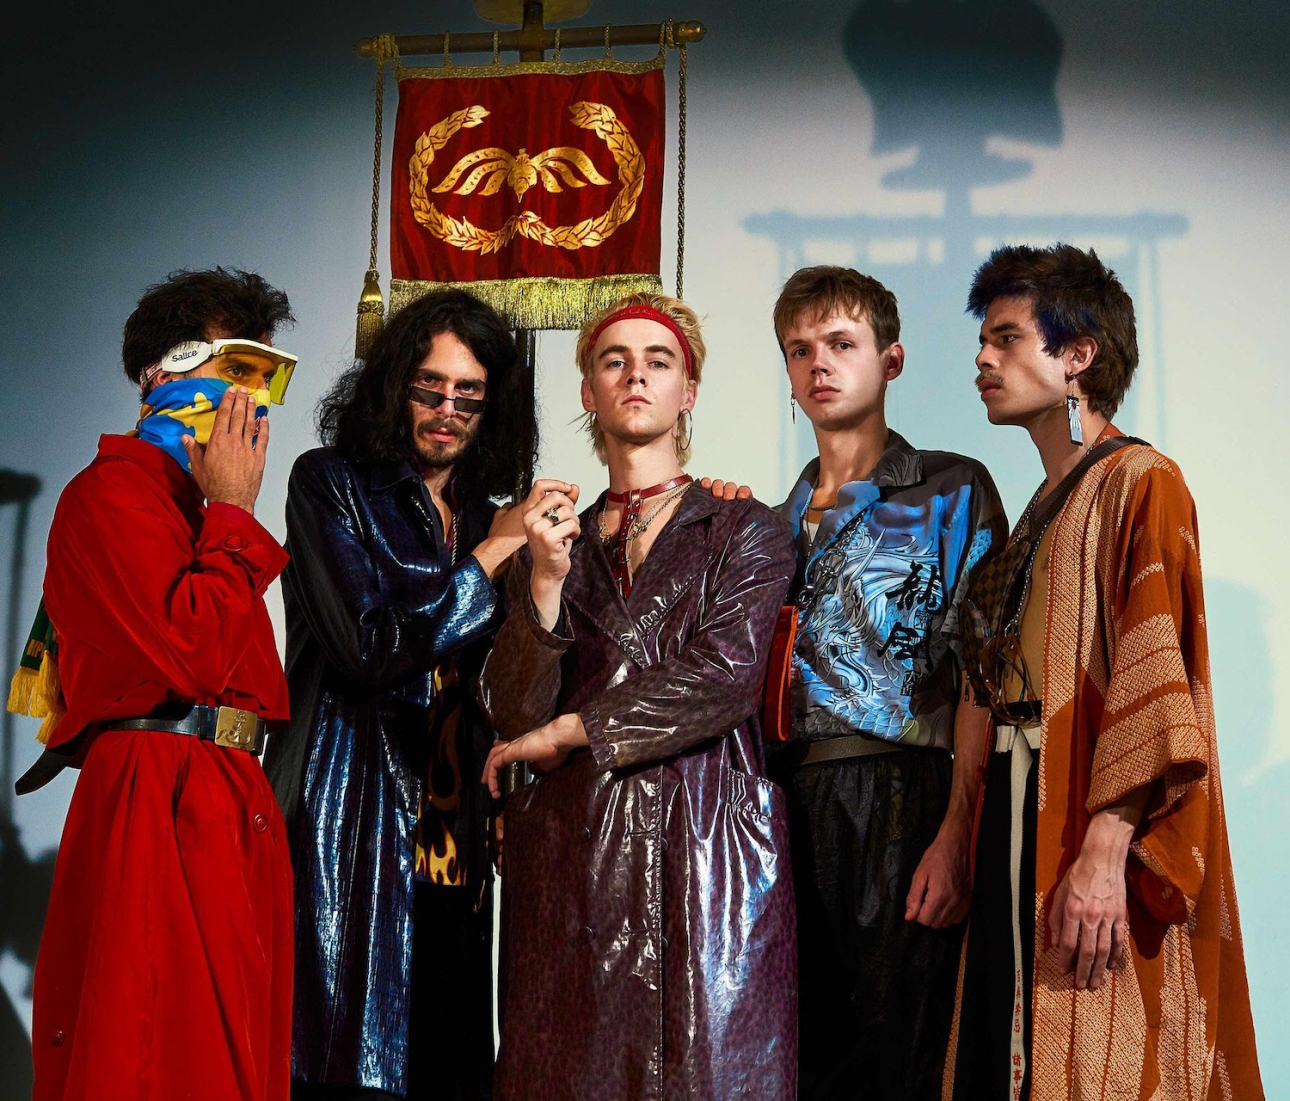 """HMLTD unveil foreboding new single """"Why?"""""""